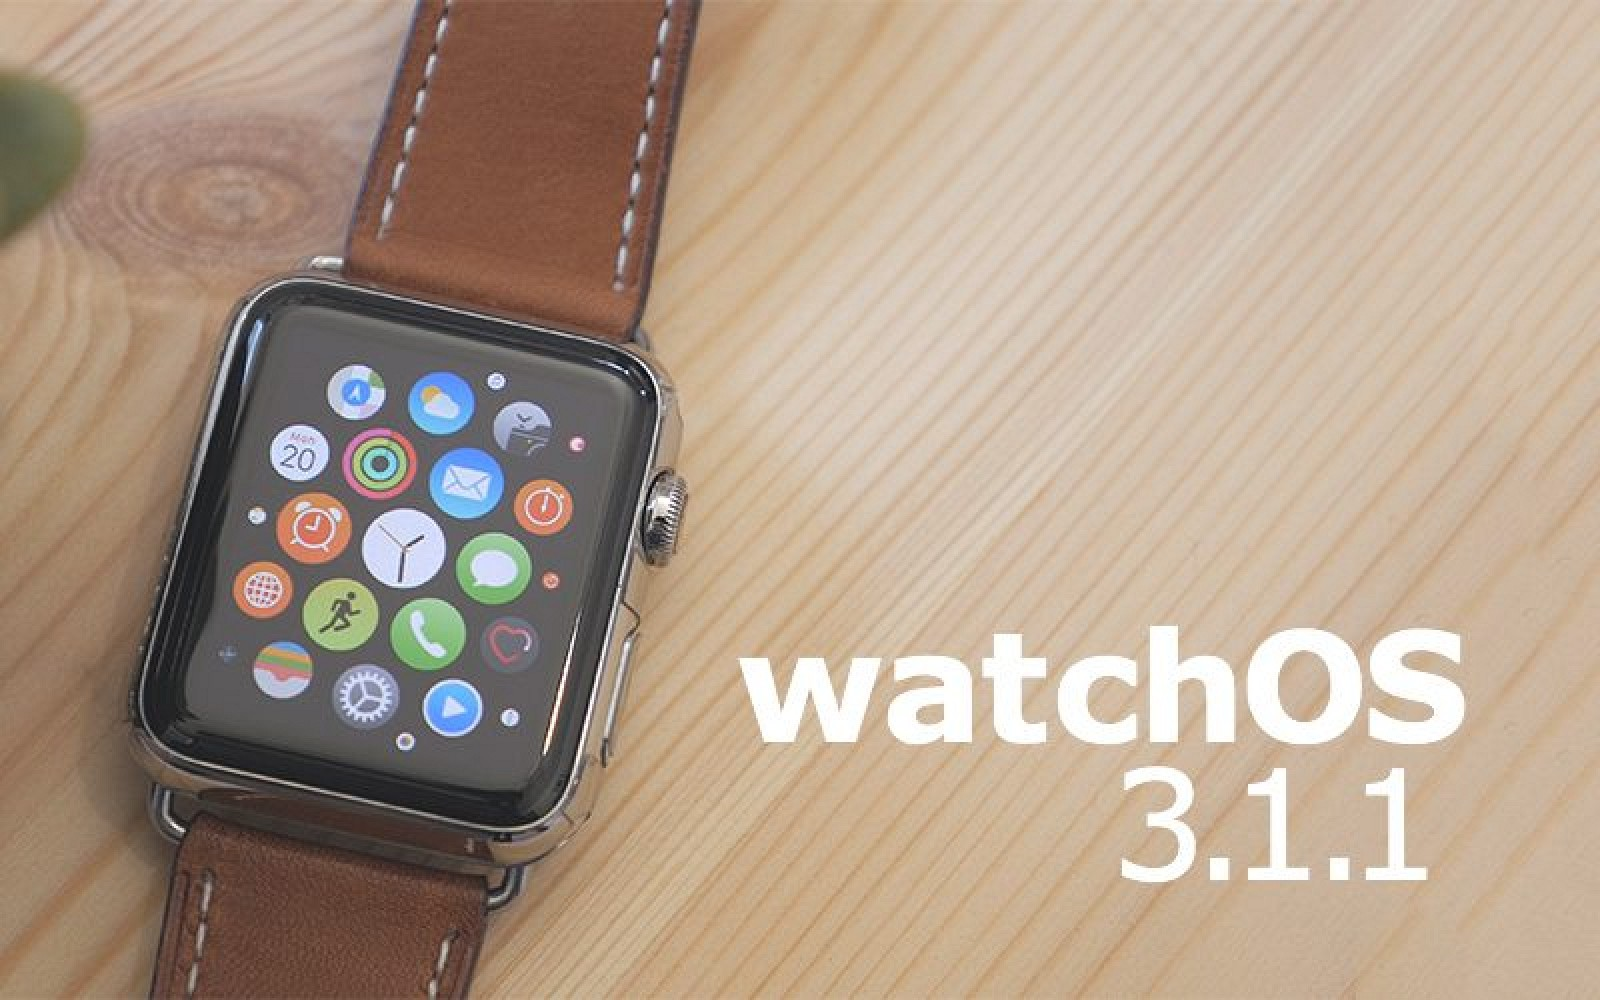 Watchos 3 major update now available - Apple Releases Watchos 3 1 1 With Bug Fixes Performance Improvements And New Emoji Mac Rumors